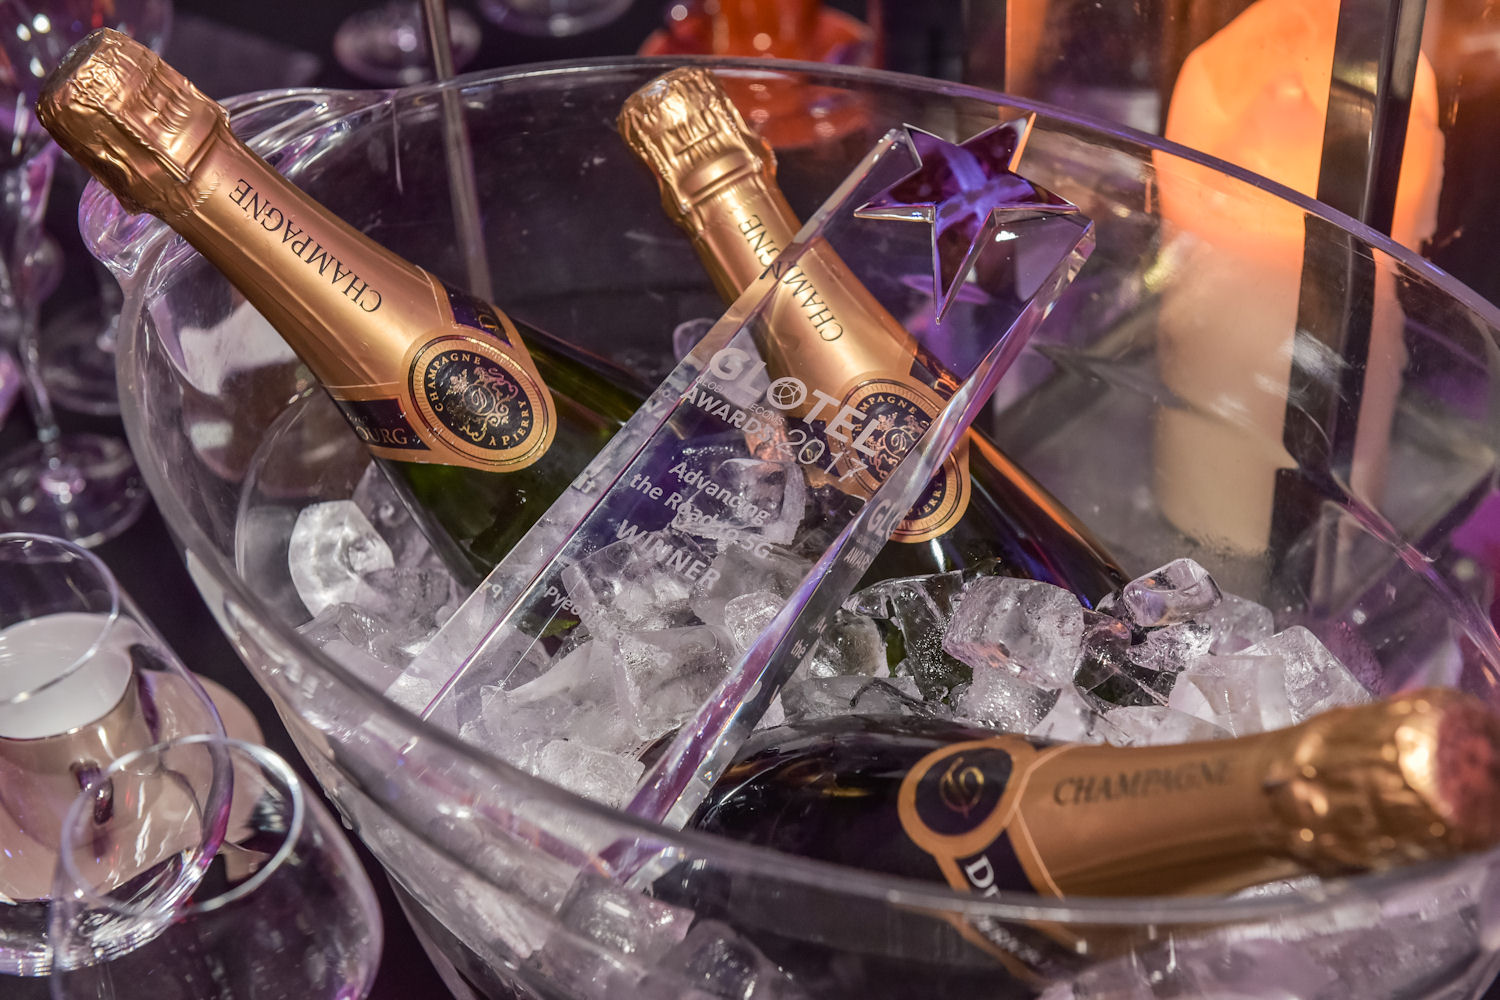 Glotel 2017 award and bubbly